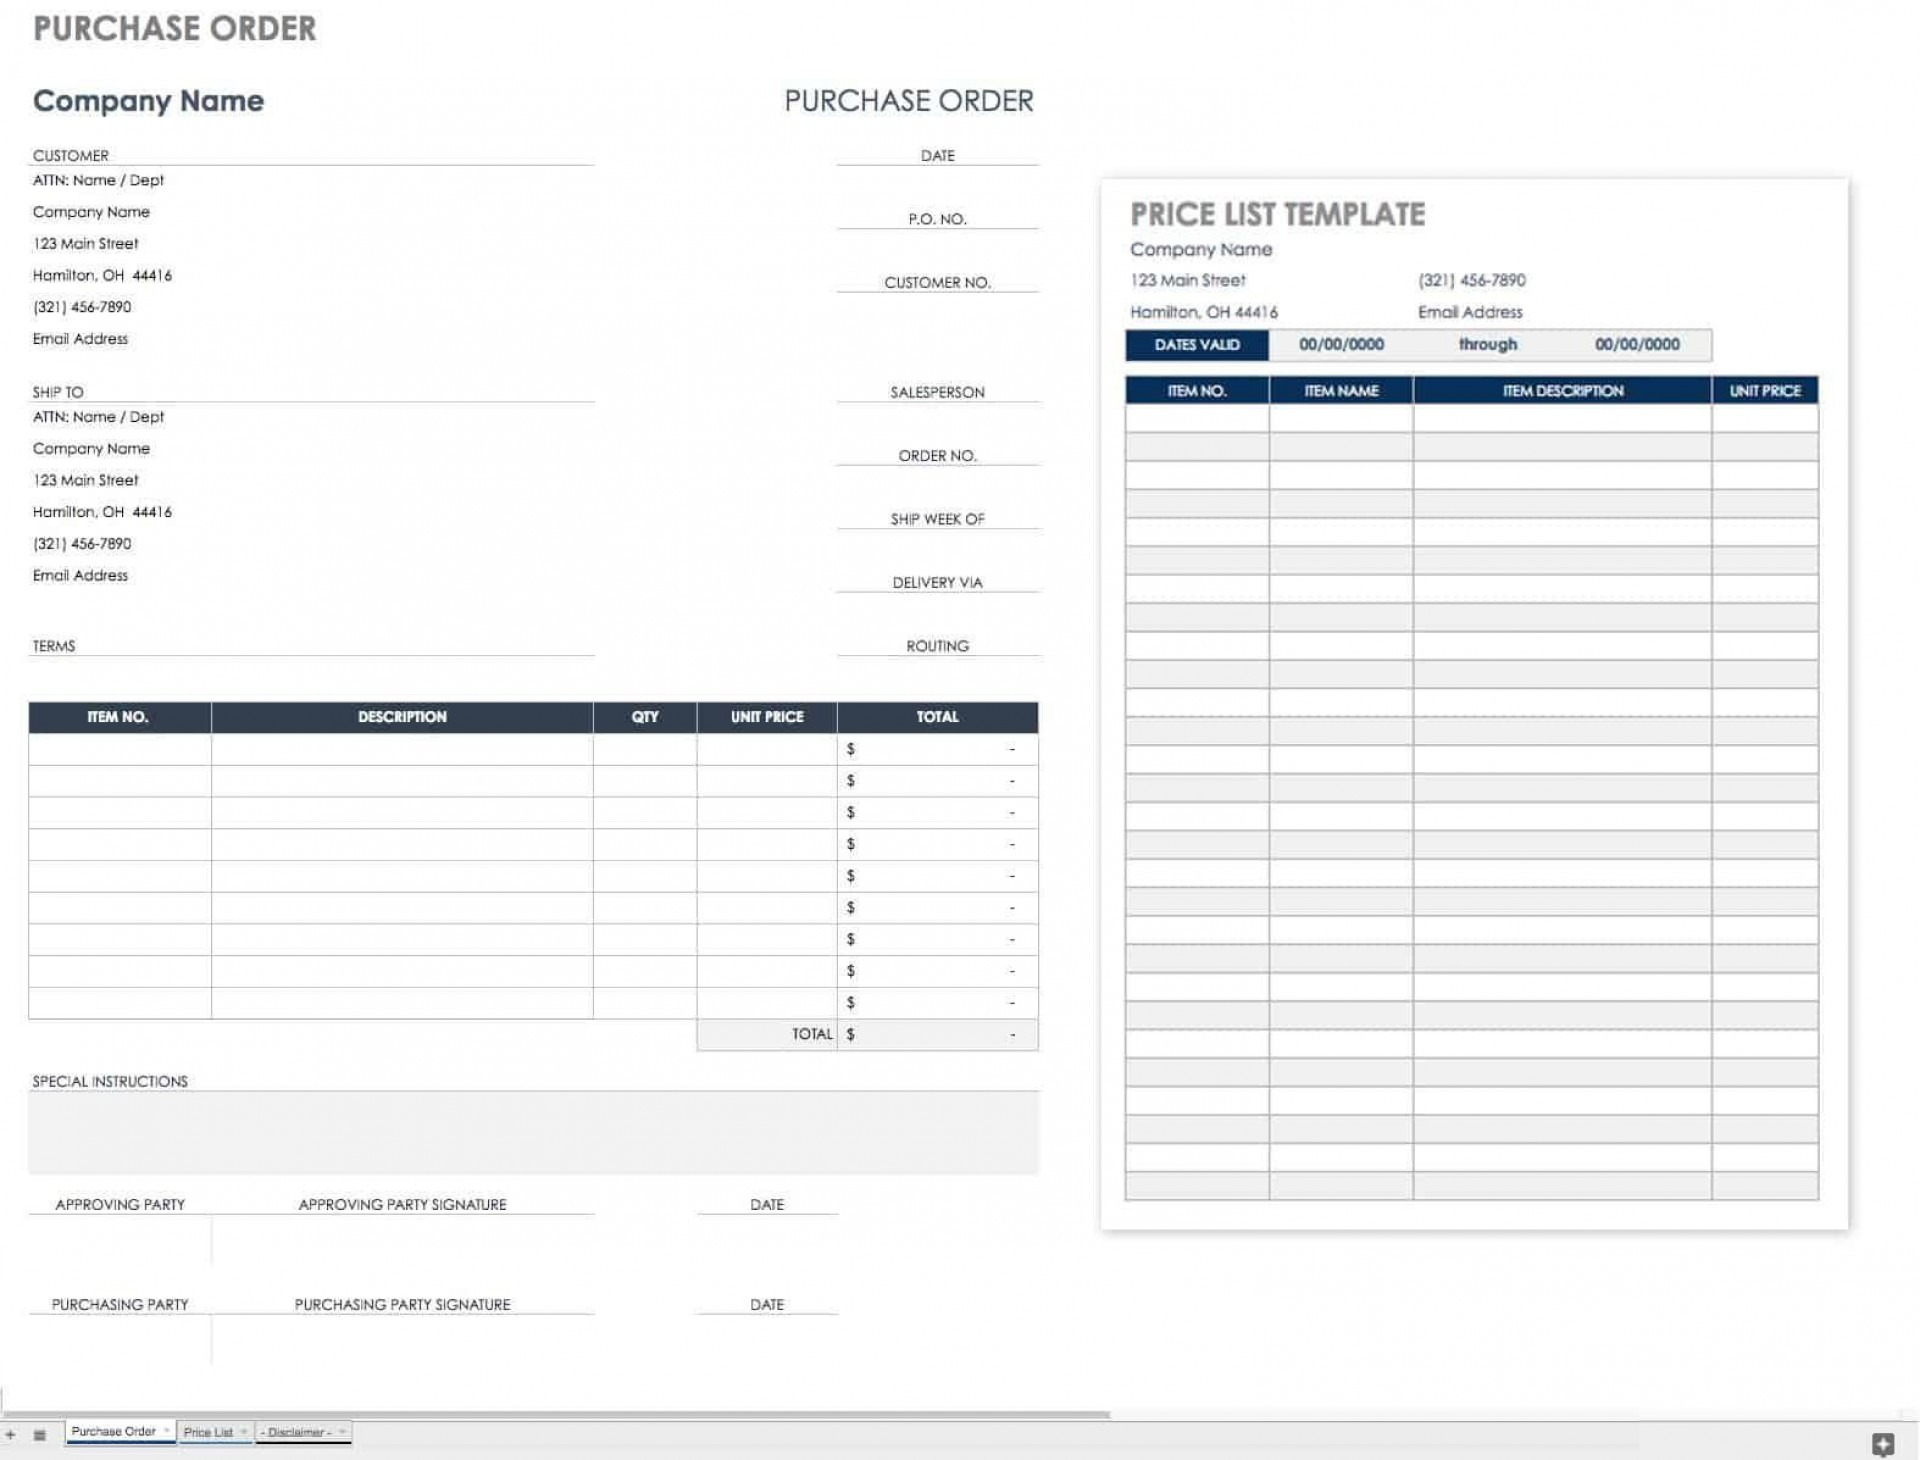 002 Amazing Purchase Order Template Free Sample  Log M Acces Blanket1920